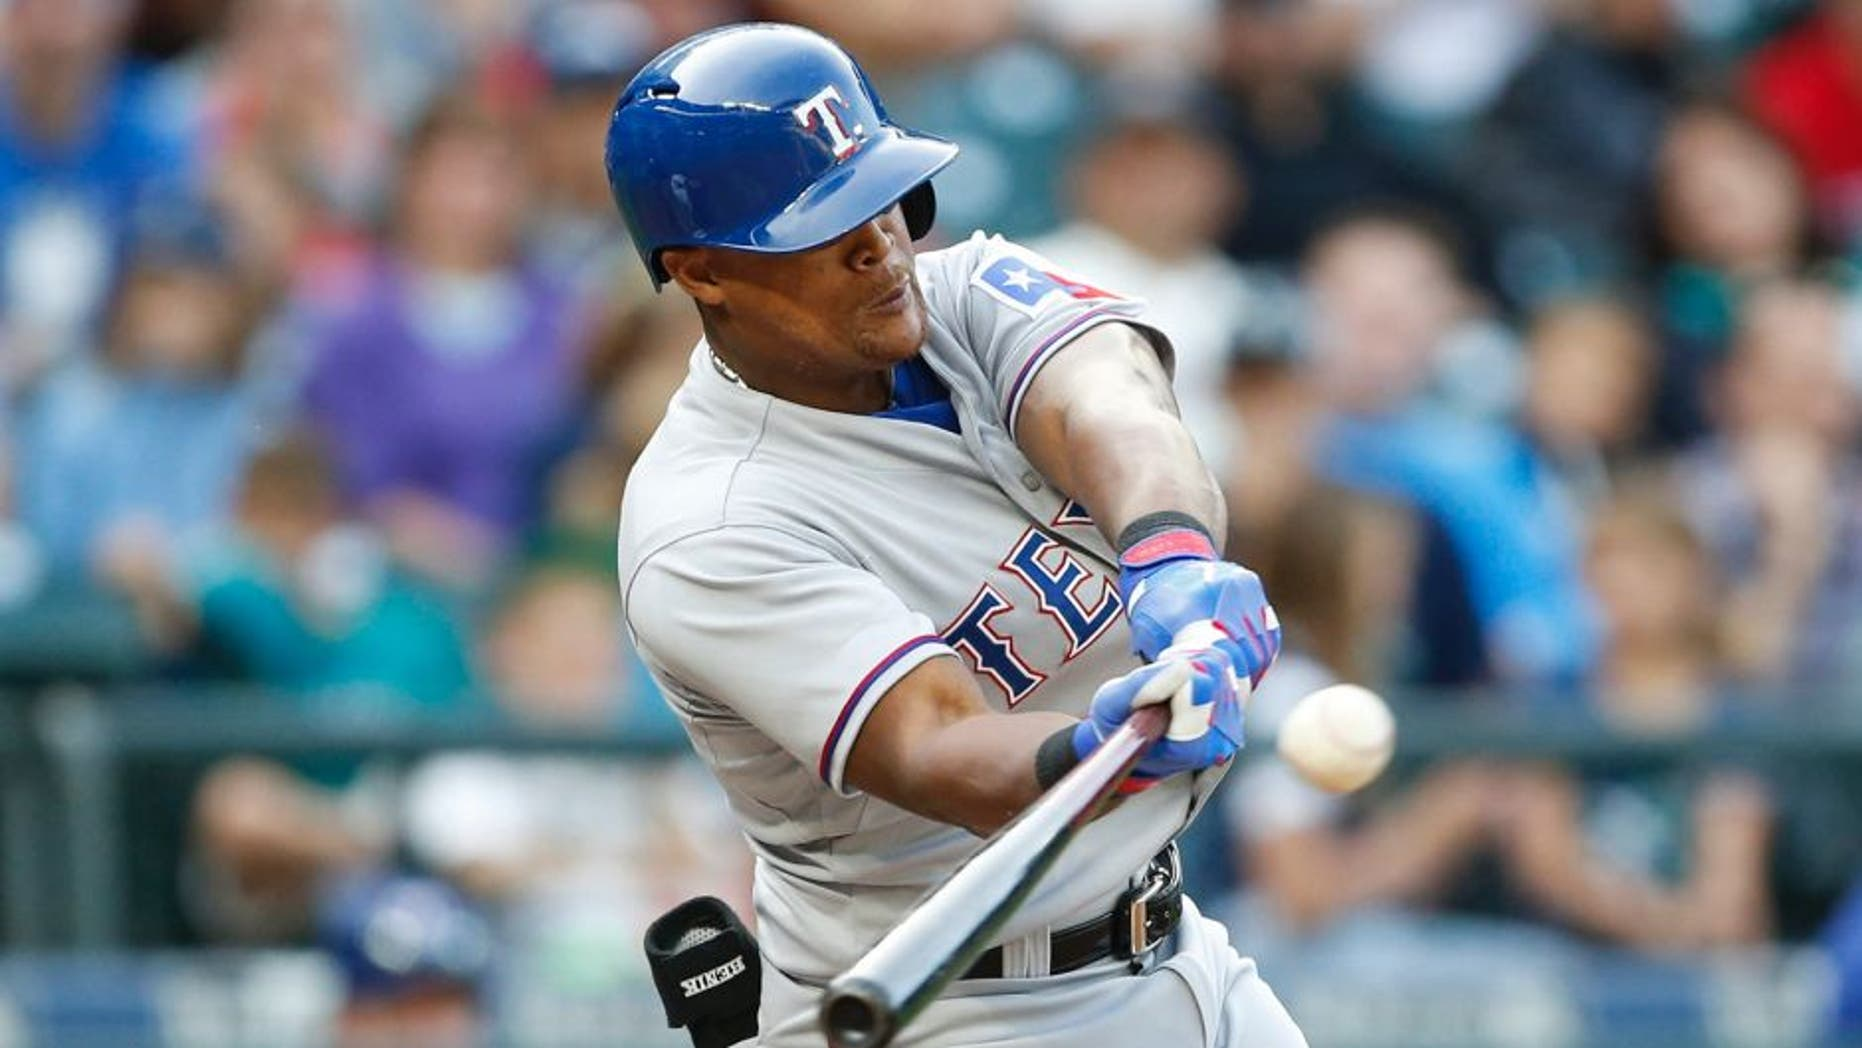 Sep 7, 2015; Seattle, WA, USA; Texas Rangers third baseman Adrian Beltre (29) hits a two-run RBI single in the sixth inning against the Seattle Mariners at Safeco Field. Mandatory Credit: Jennifer Buchanan-USA TODAY Sports